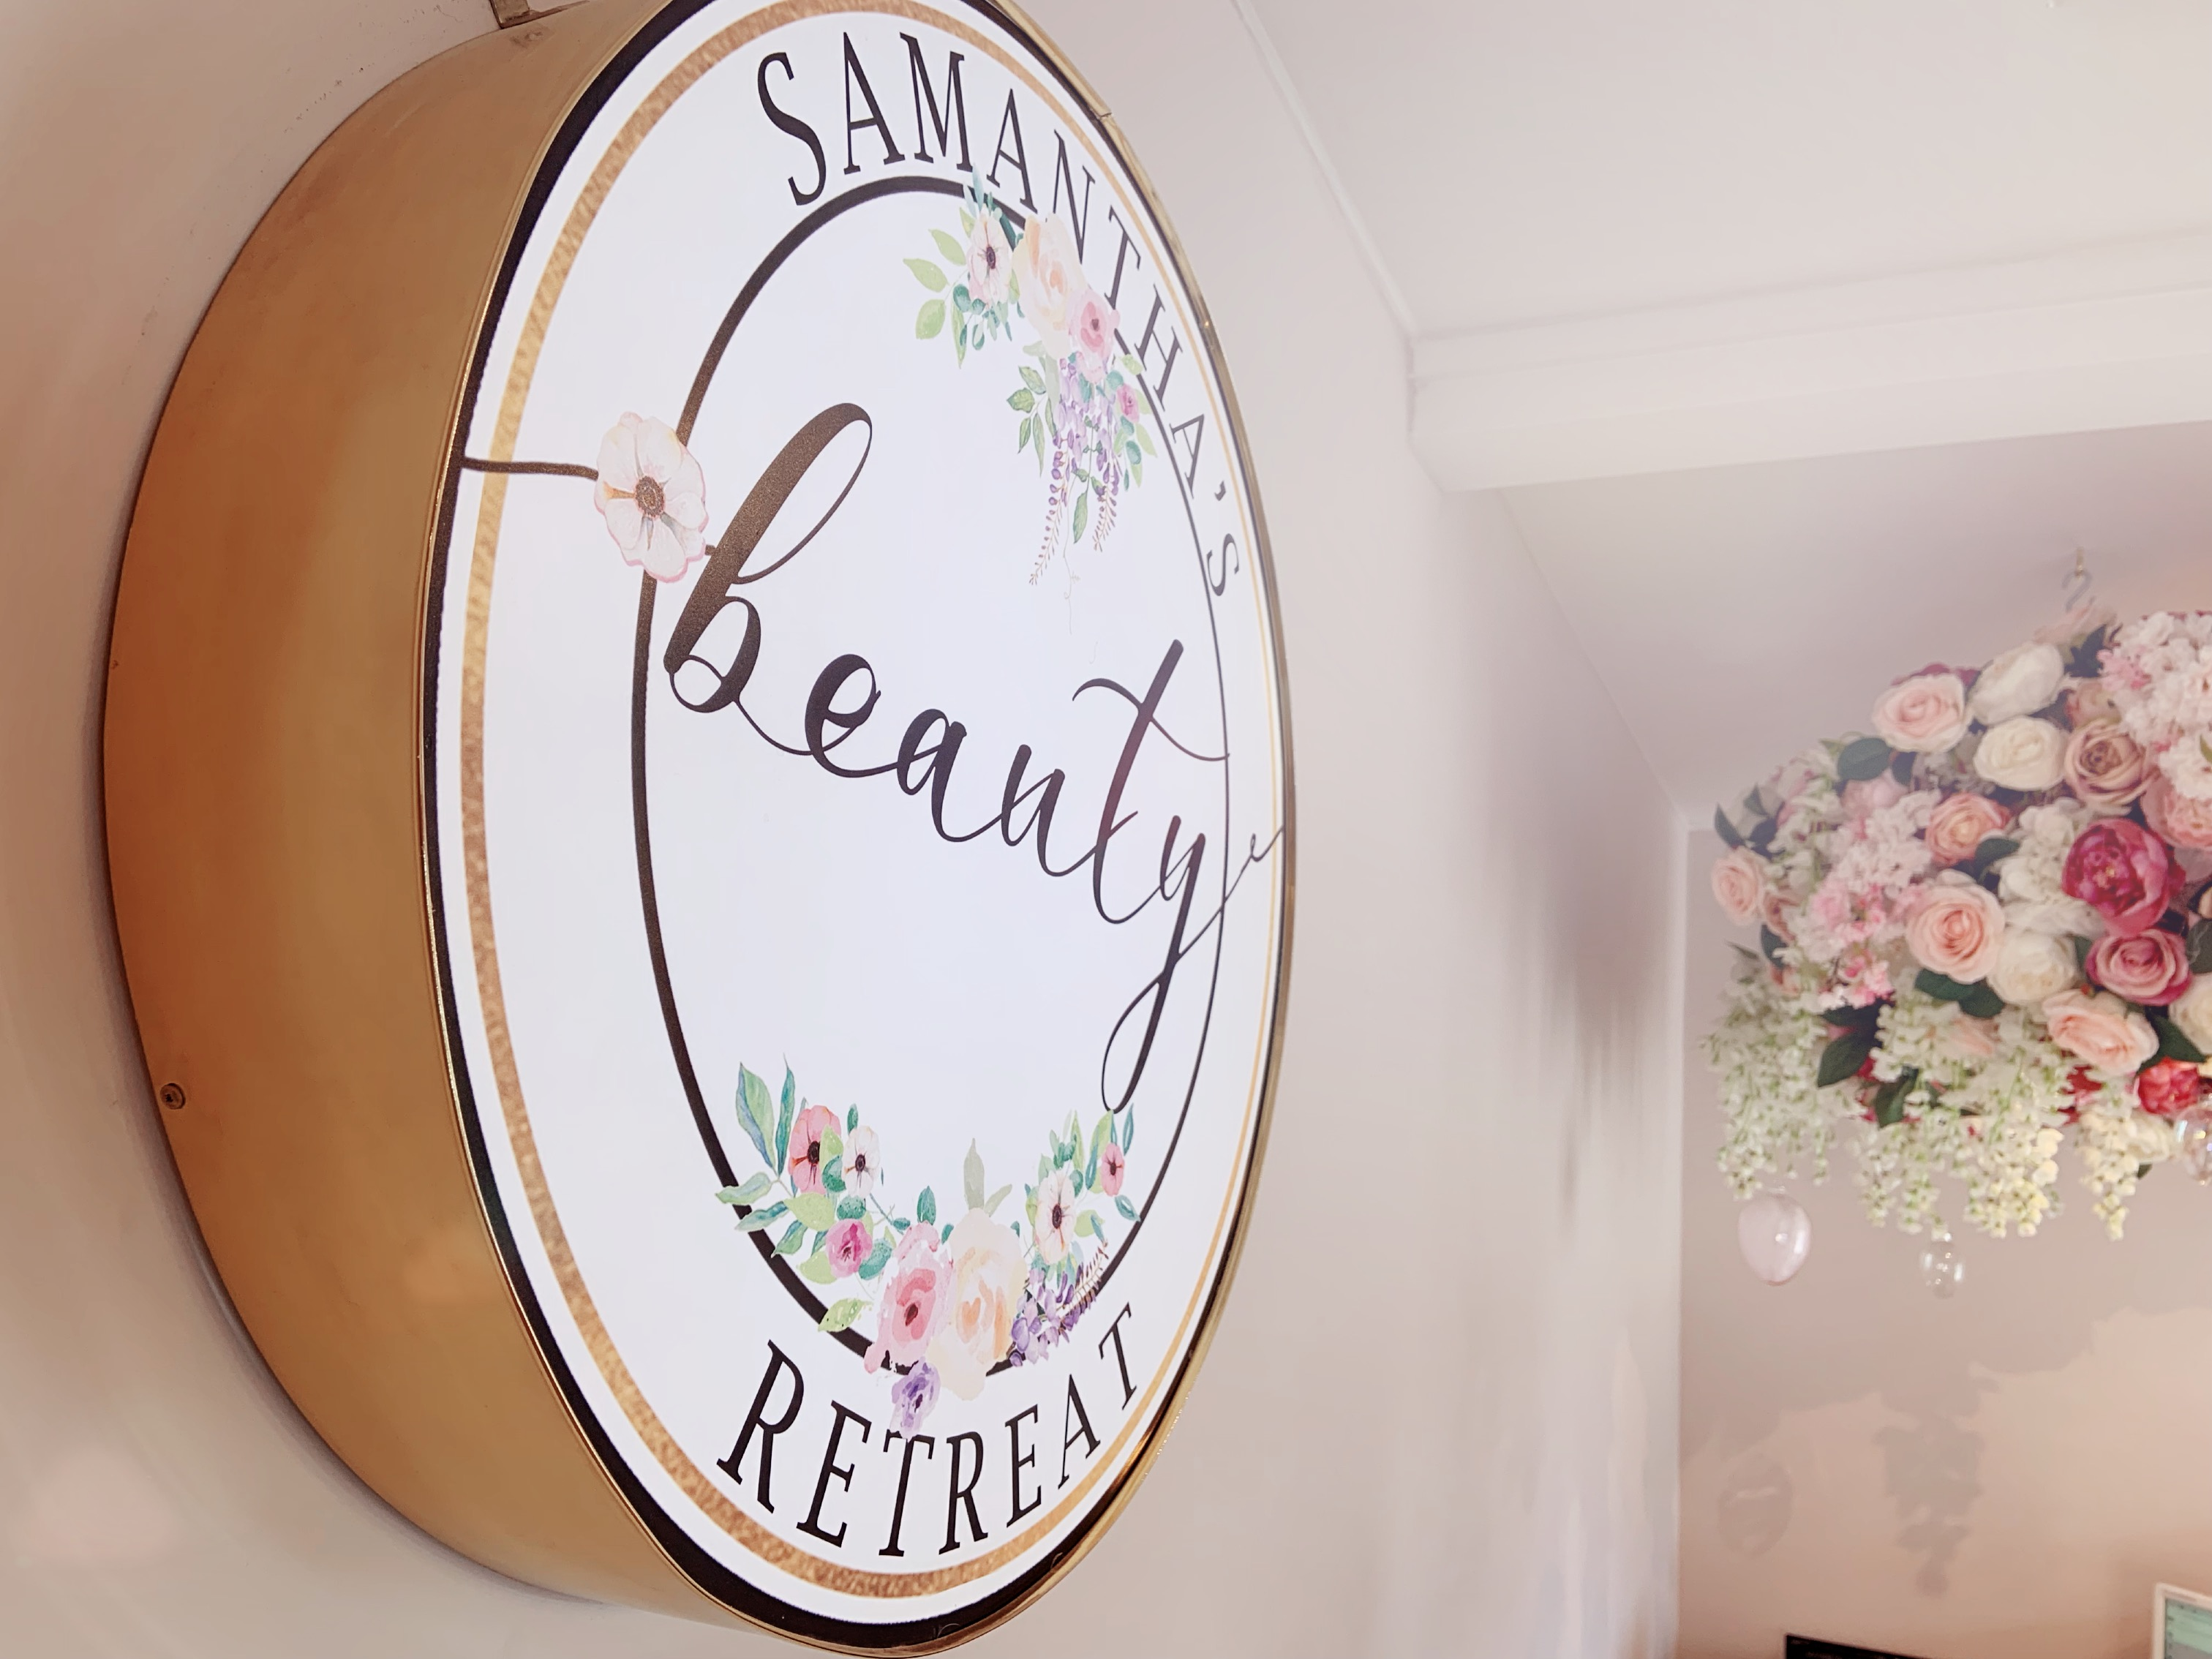 Samantha's Beauty Retreat